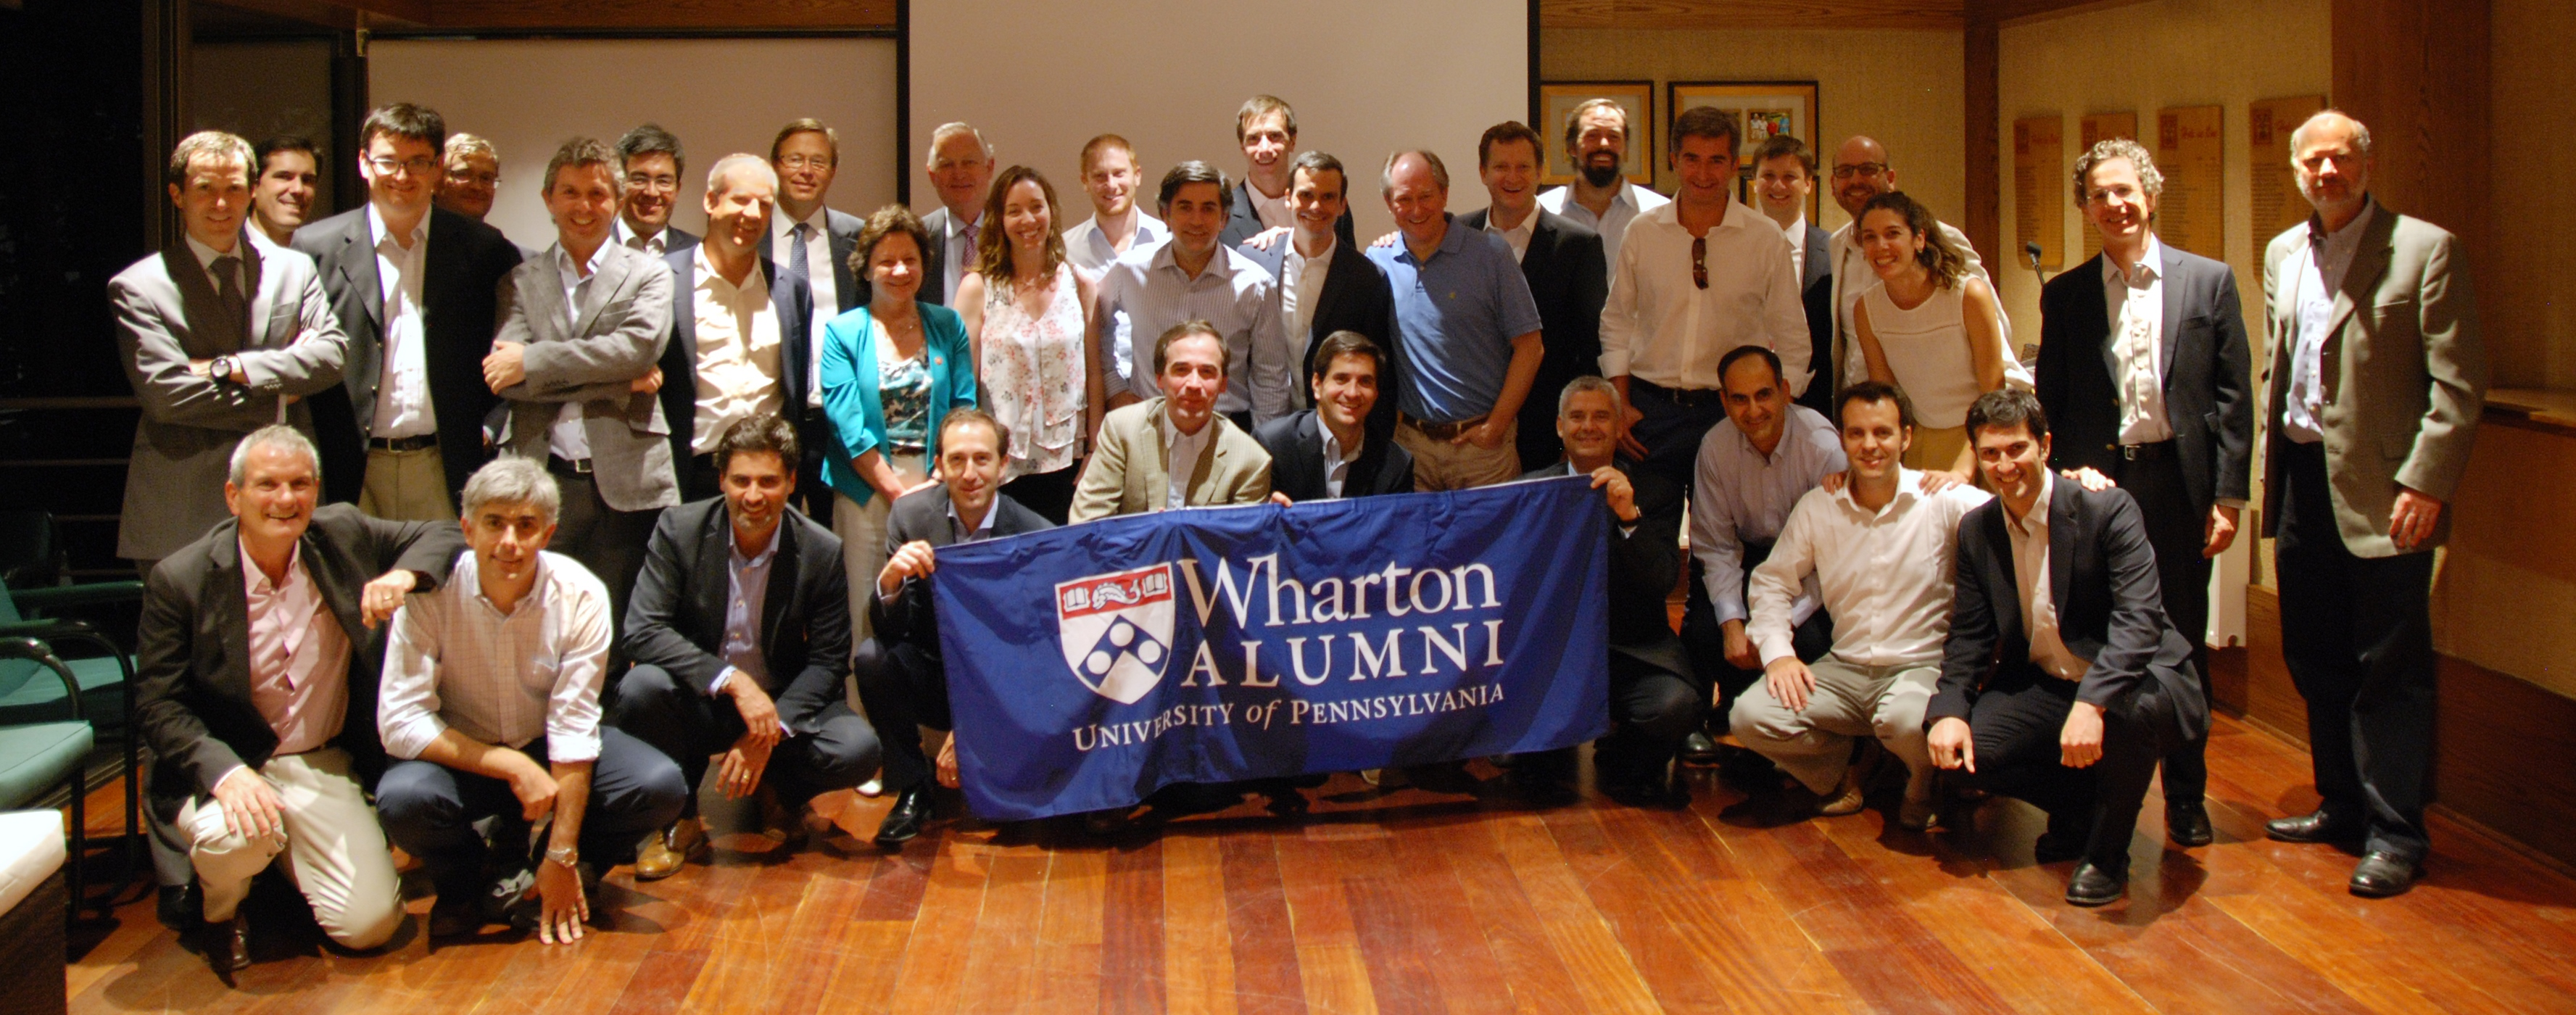 201612_Junta_Club_Wharton_Chile.jpg